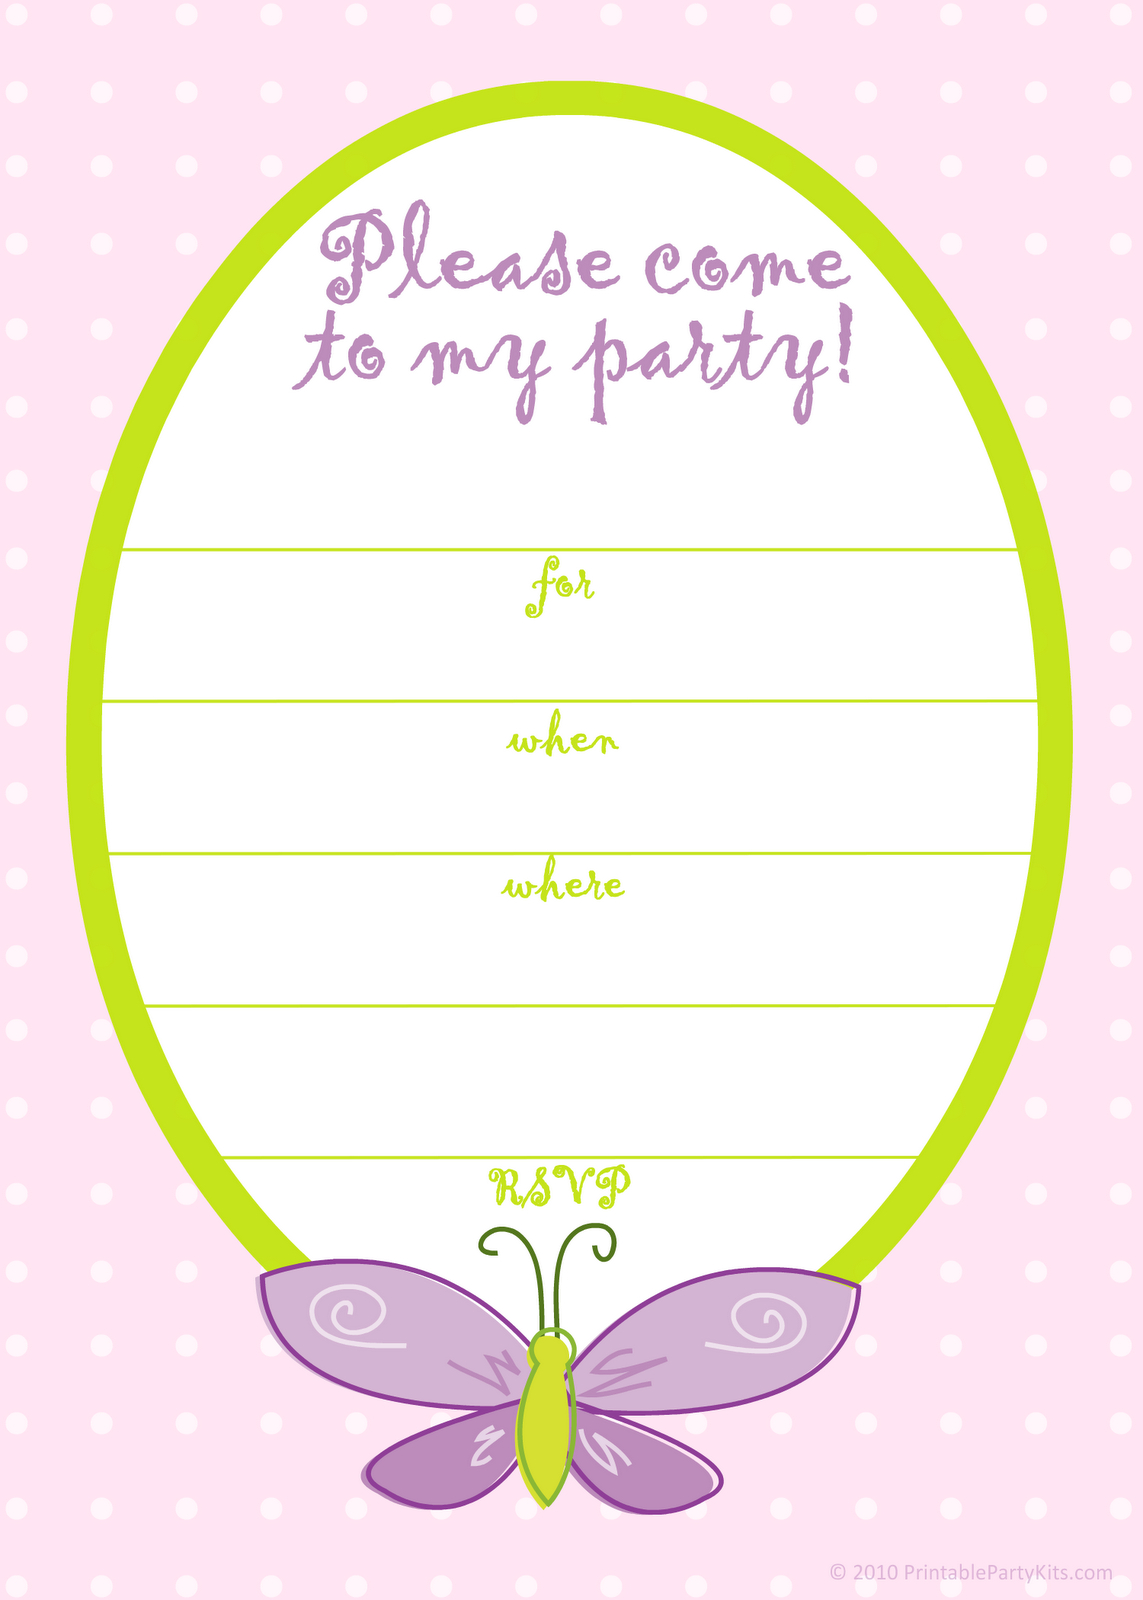 Free Printable Party Invitations: Free Pink Butterfly Girls Birthday - Free Printable Girl Birthday Party Invitations